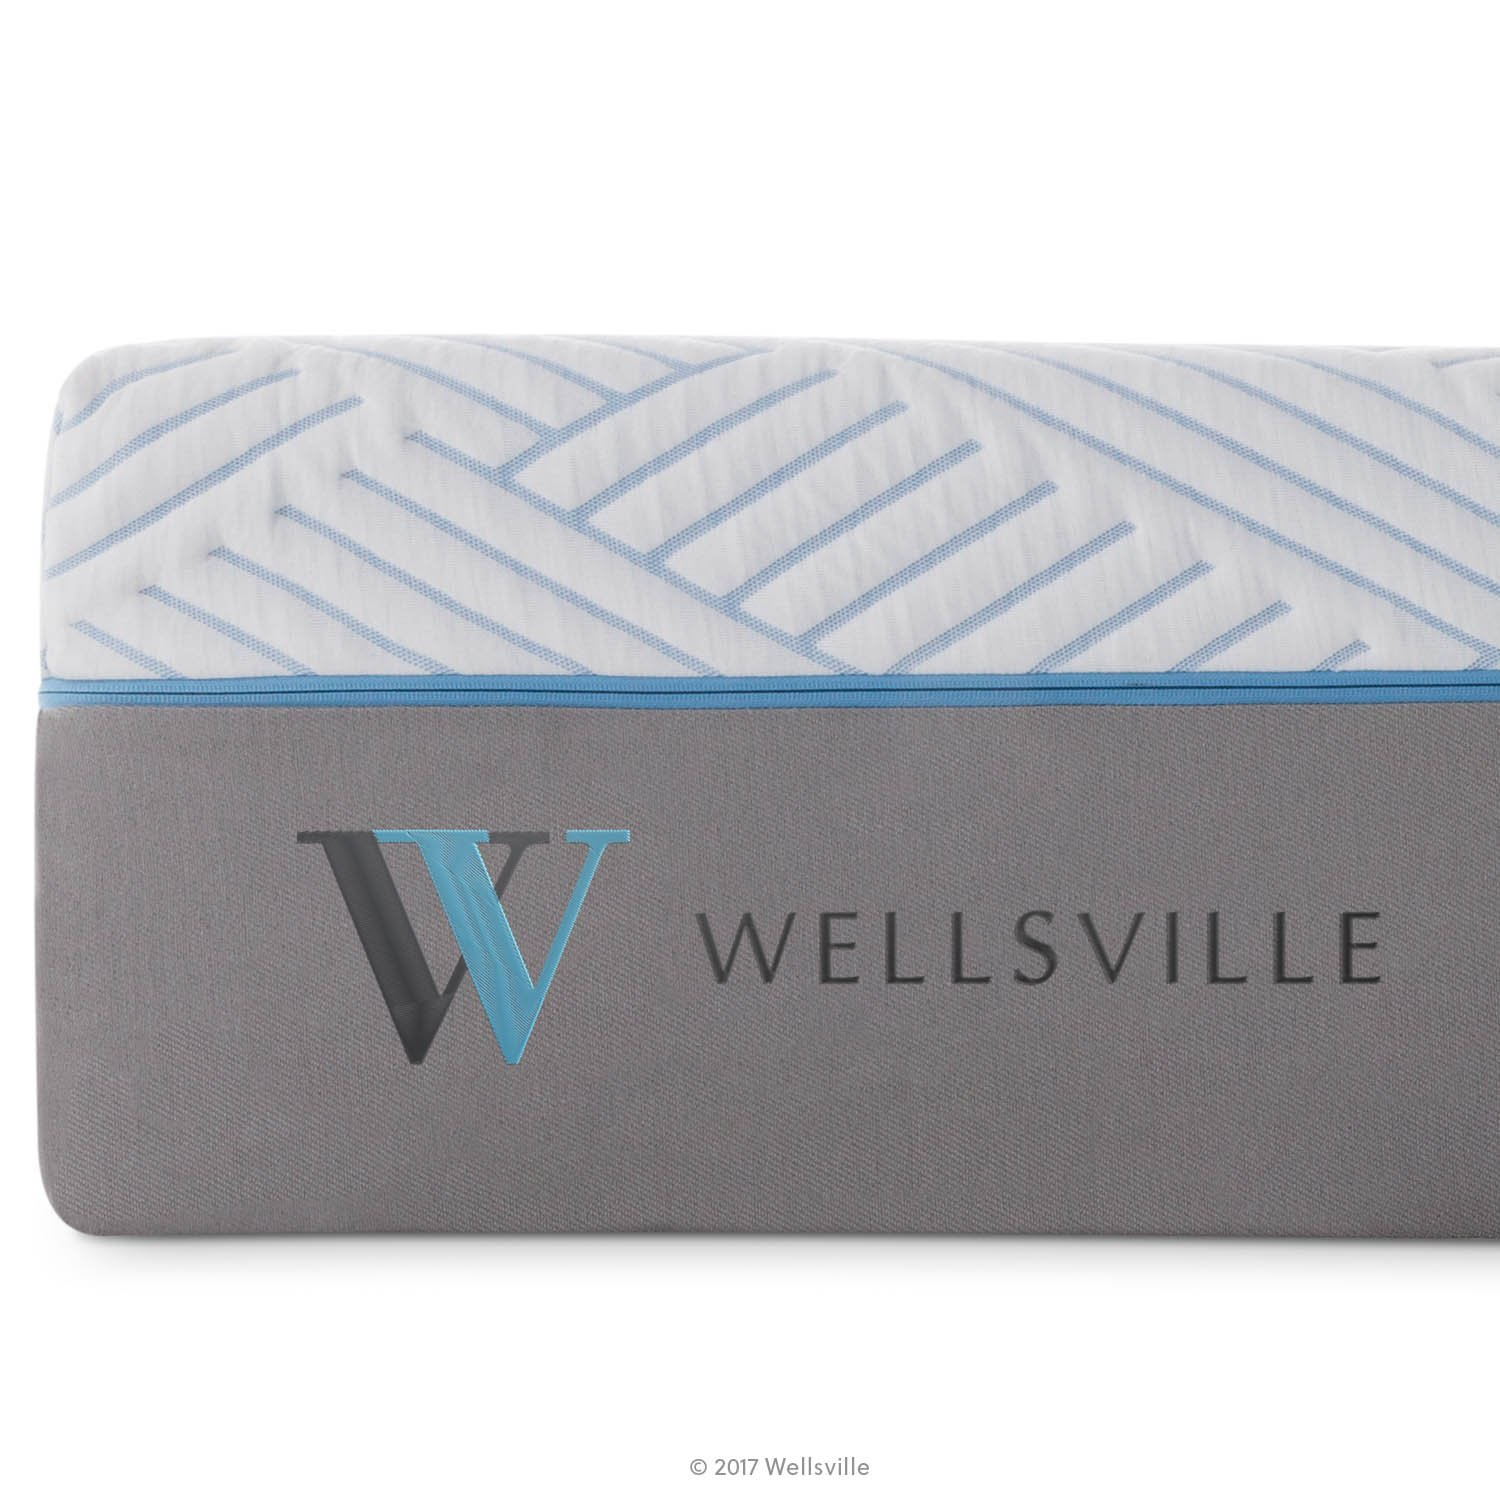 WELLSVILLE 14 Inch Carbon Cool Memory Foam Premium Mattress, King, Grey/White